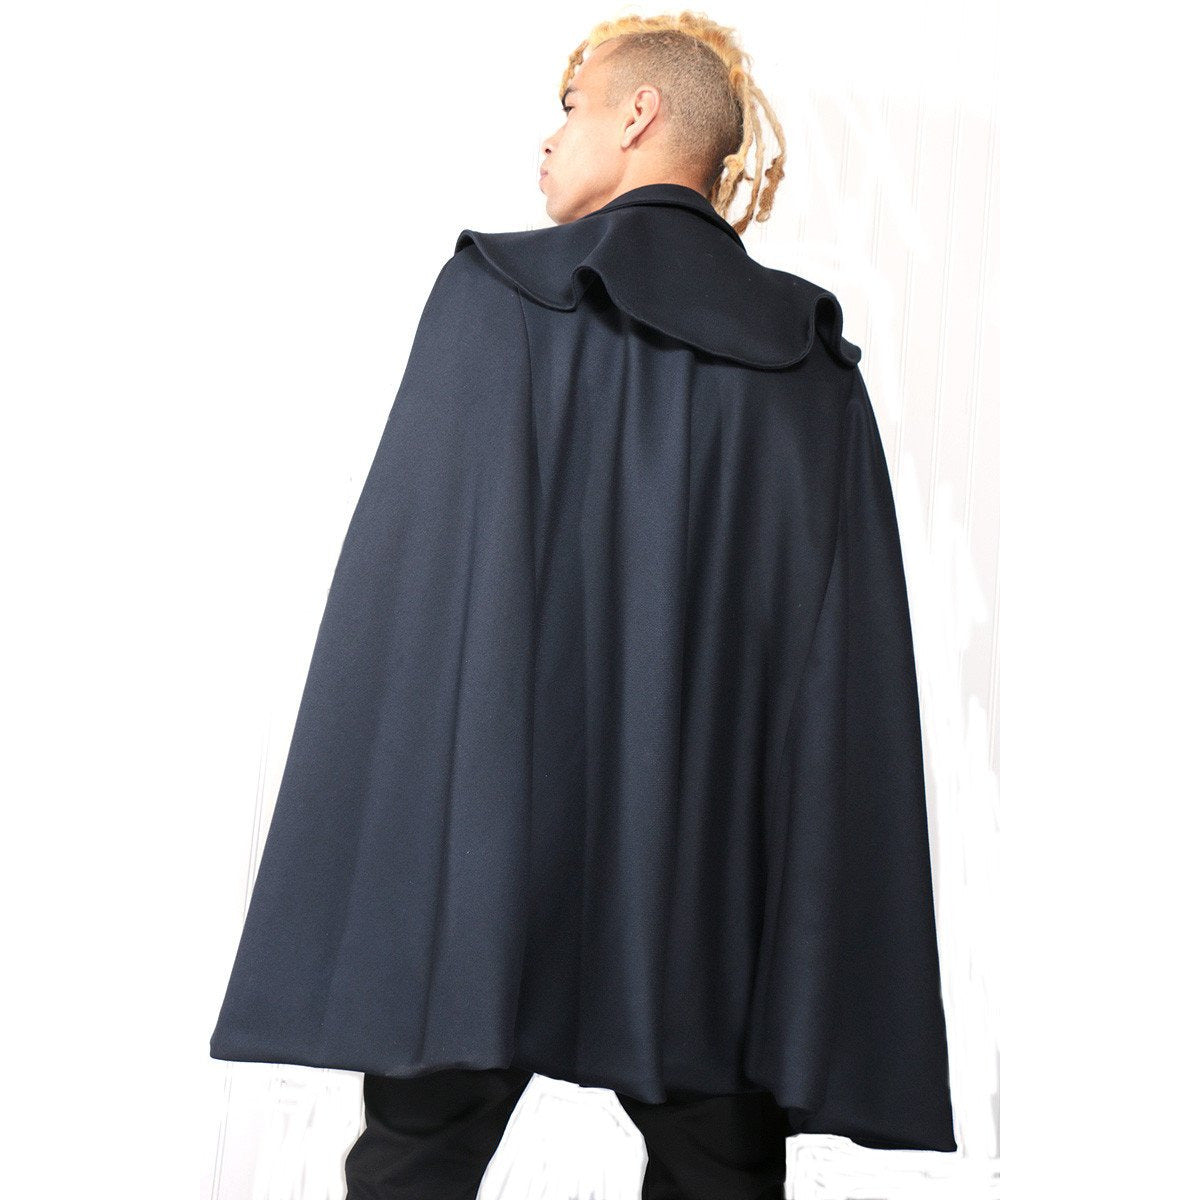 Navy Blue Cape with custom design